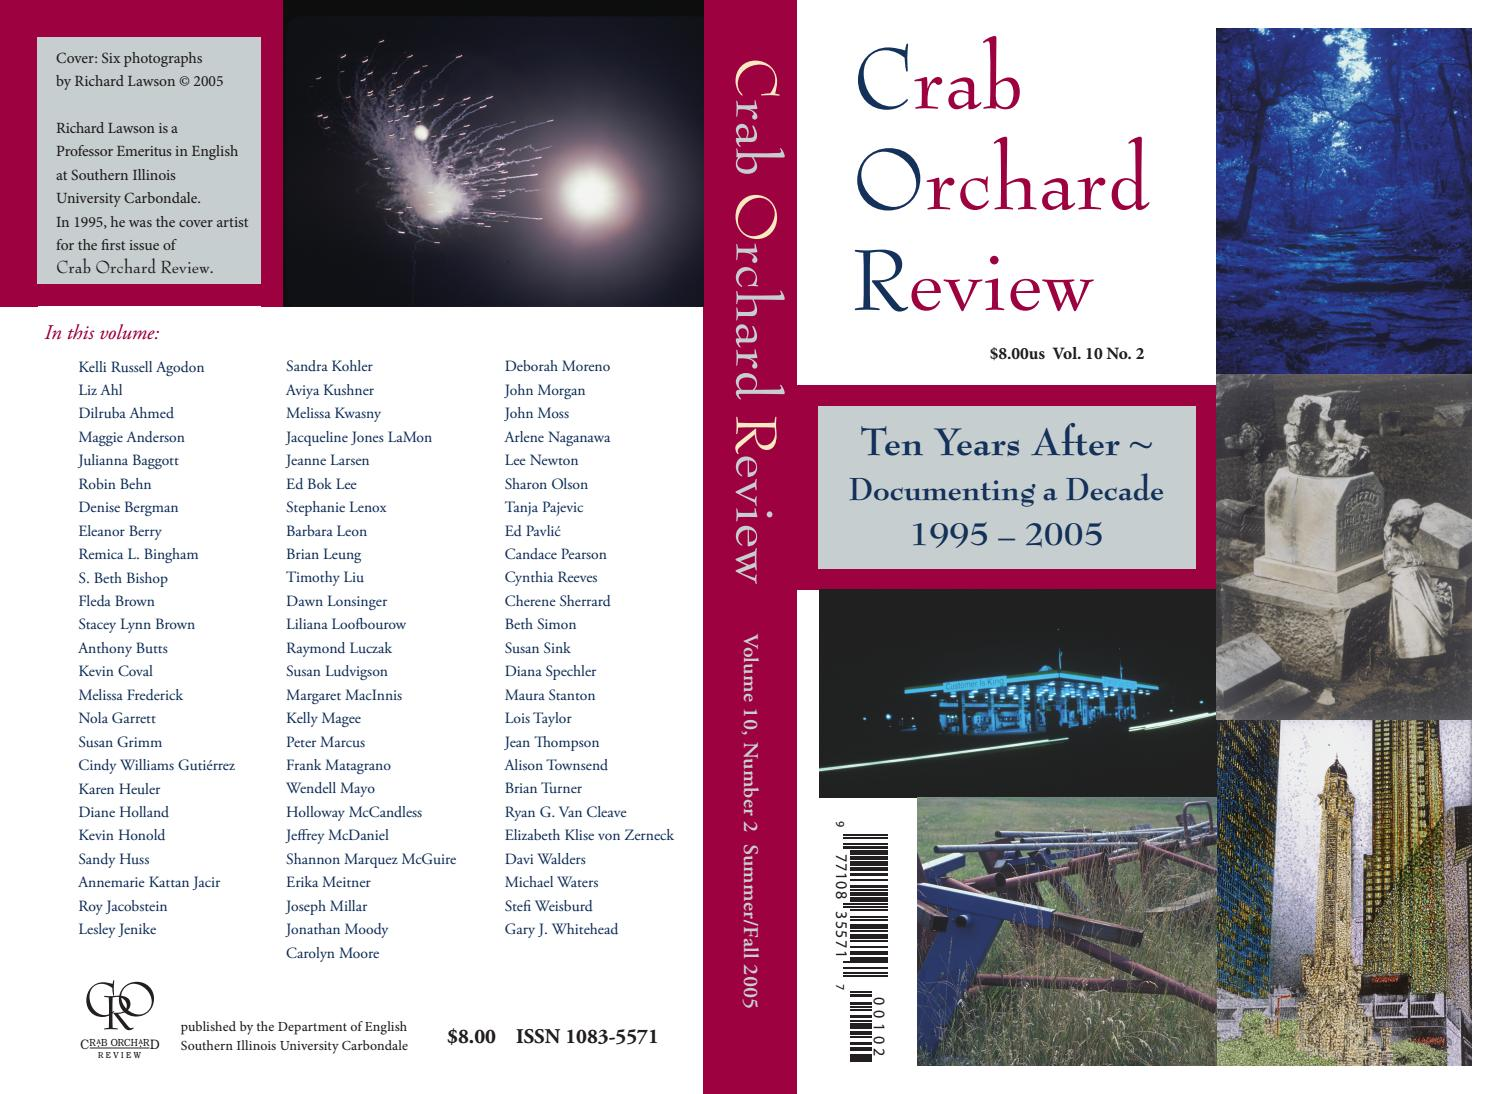 0dd2c0580bf Crab Orchard Review Vol 10 No 2 S F 2005 by Crab Orchard Review - issuu